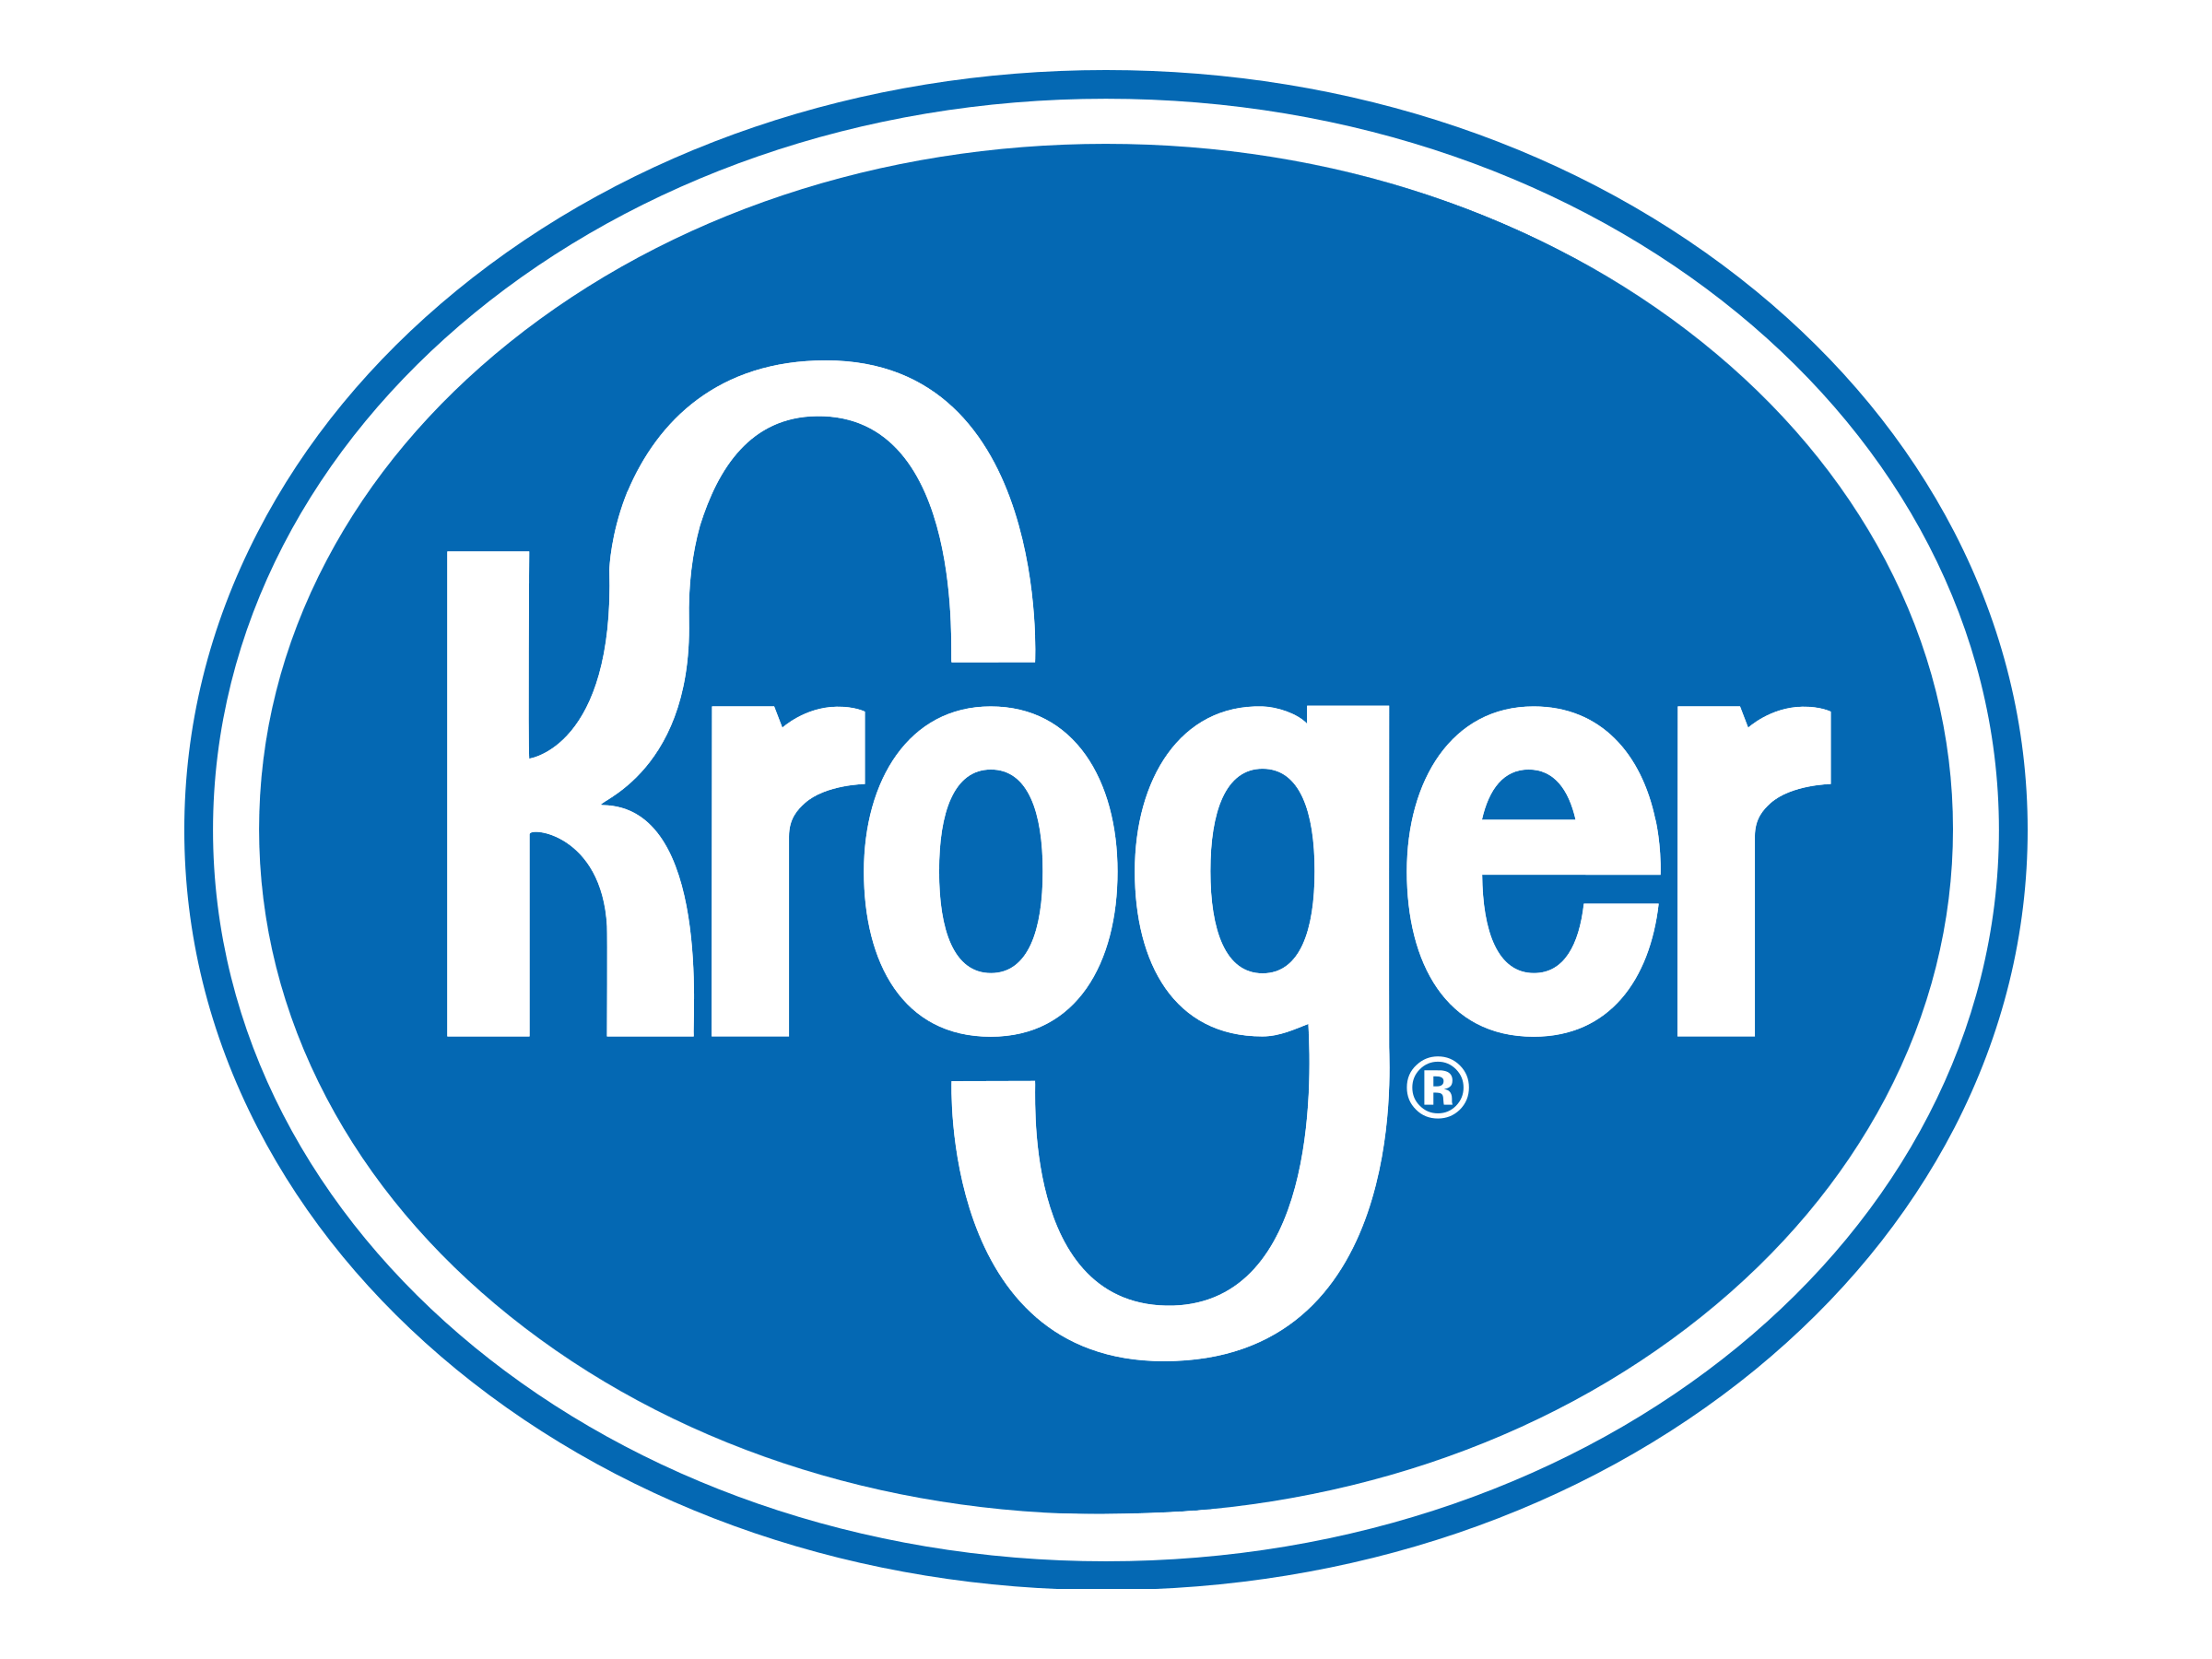 Whatever Alterations The Kroger Logo Has Gone Through It Preserved Its Distinctive Feature Iconic Curves On Letters K And G